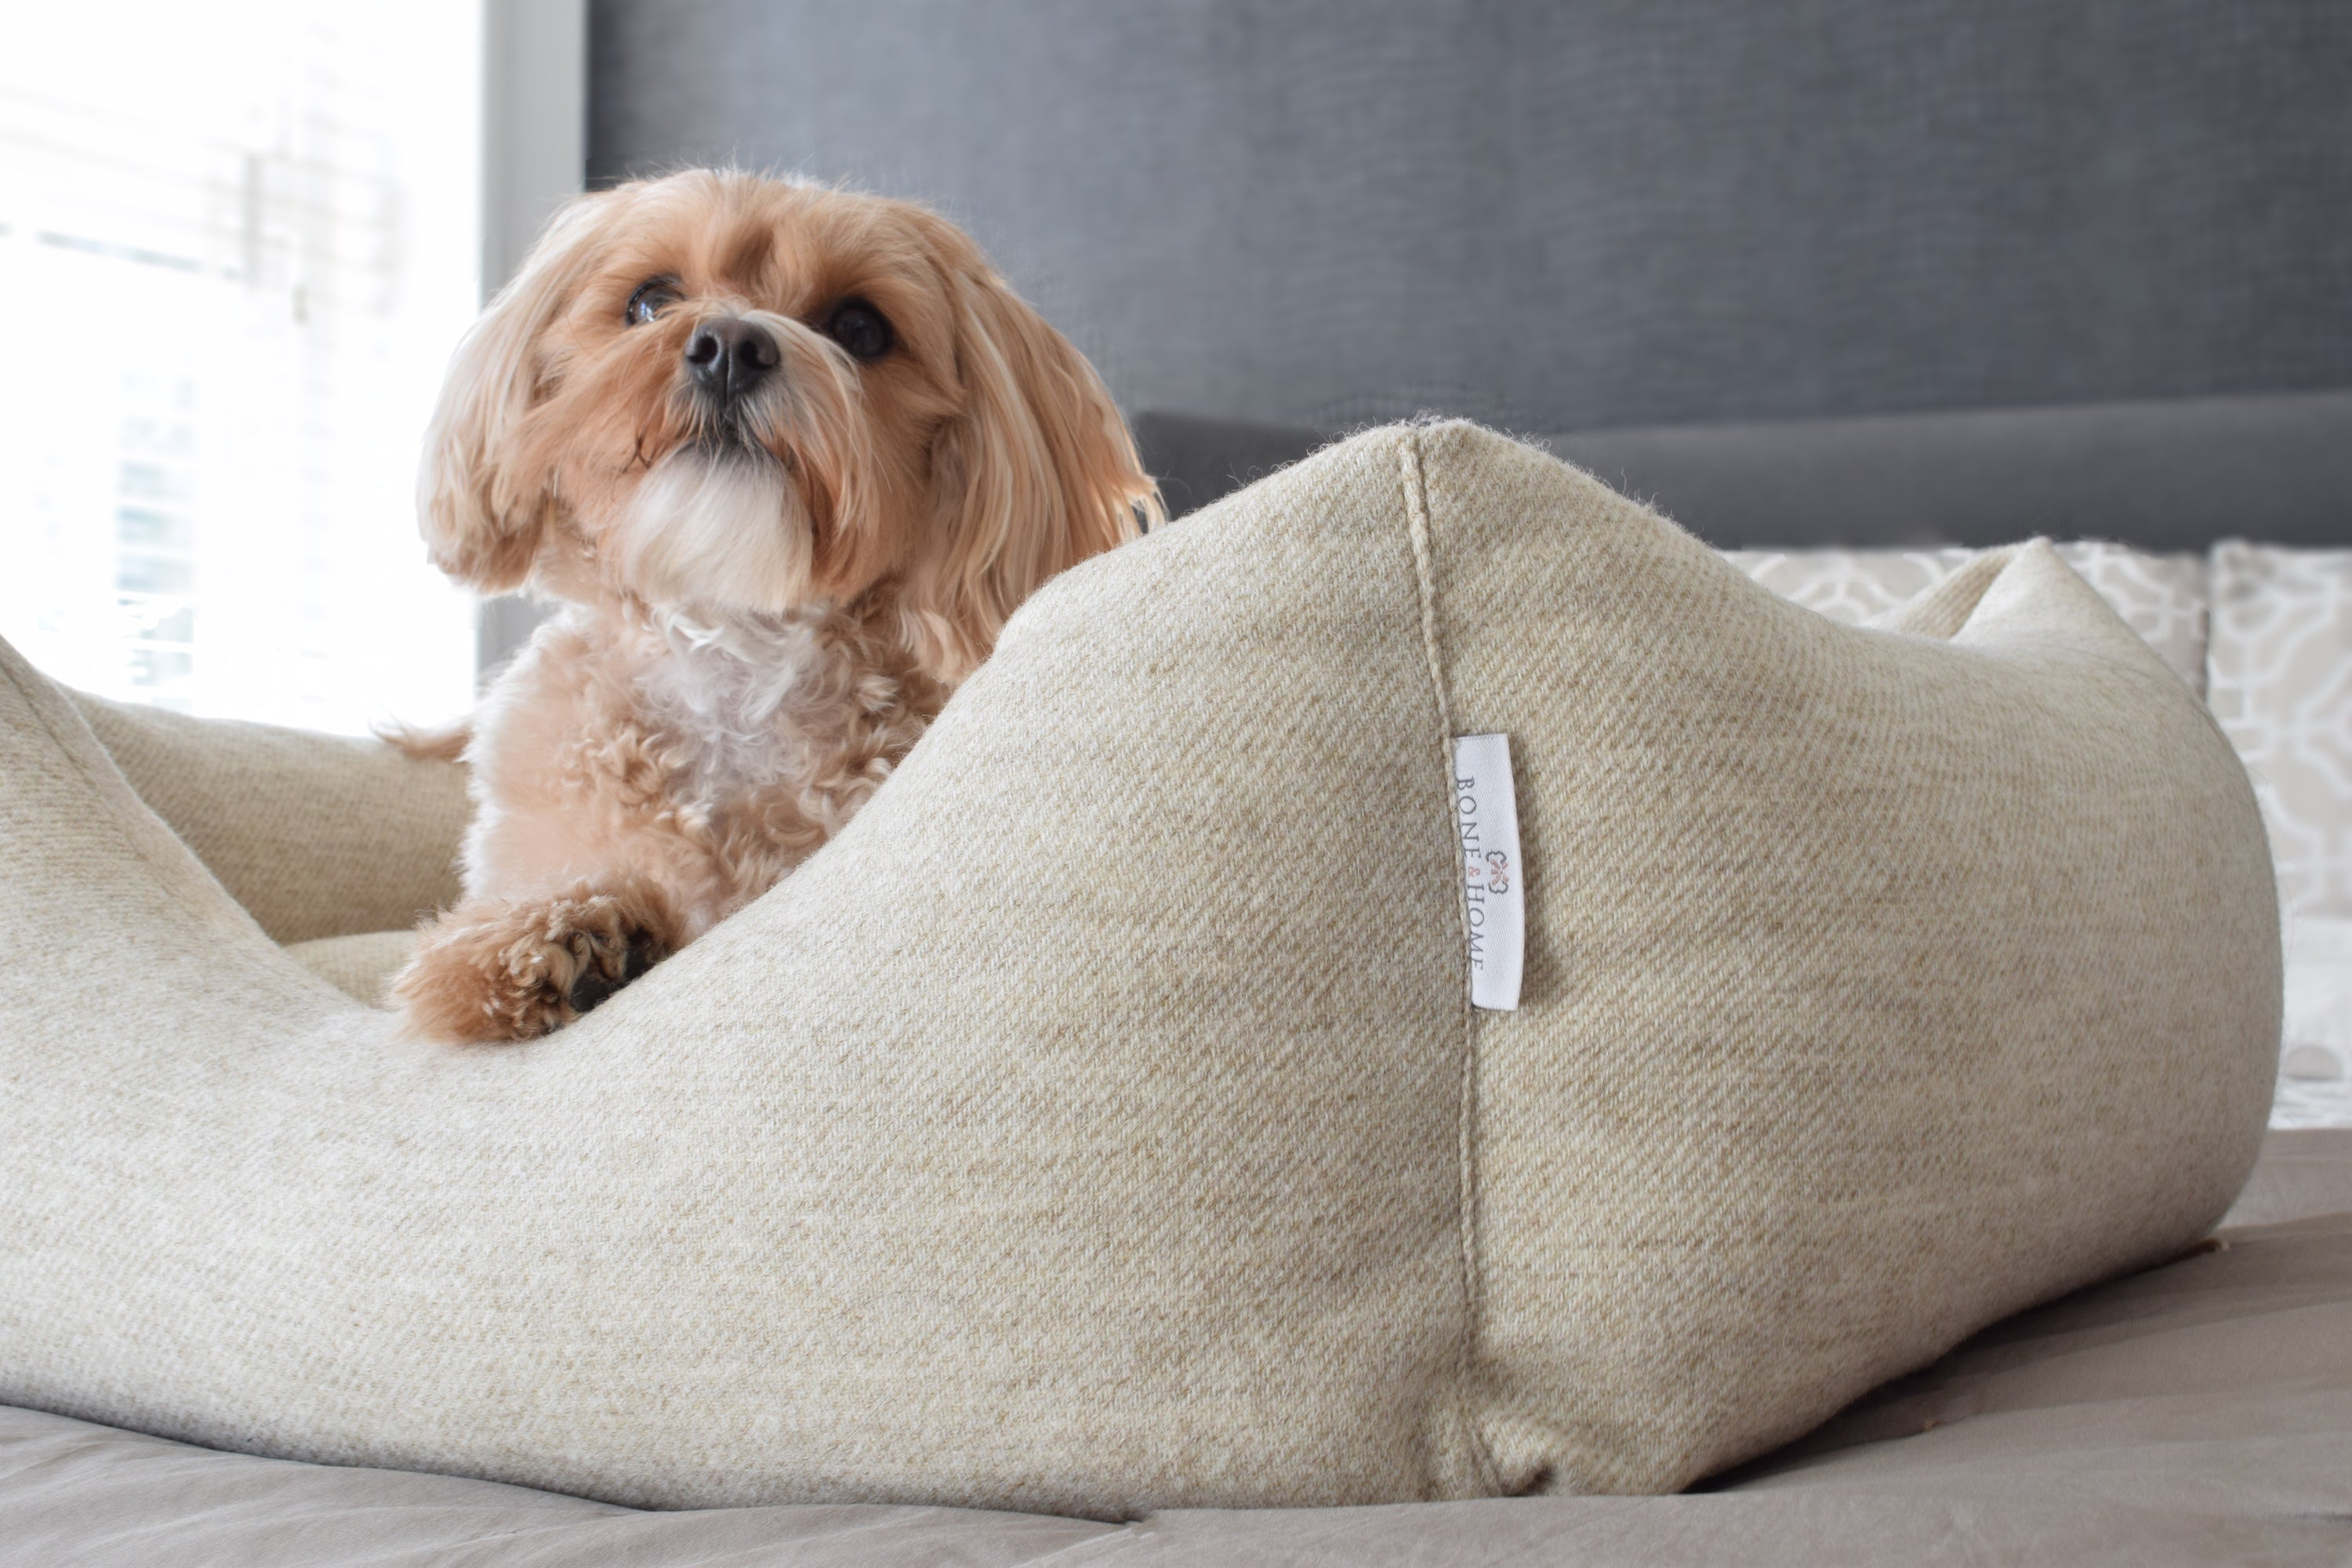 handle fletcher heather dog luxury zoom pet bed product of grey cloud beds images dream london